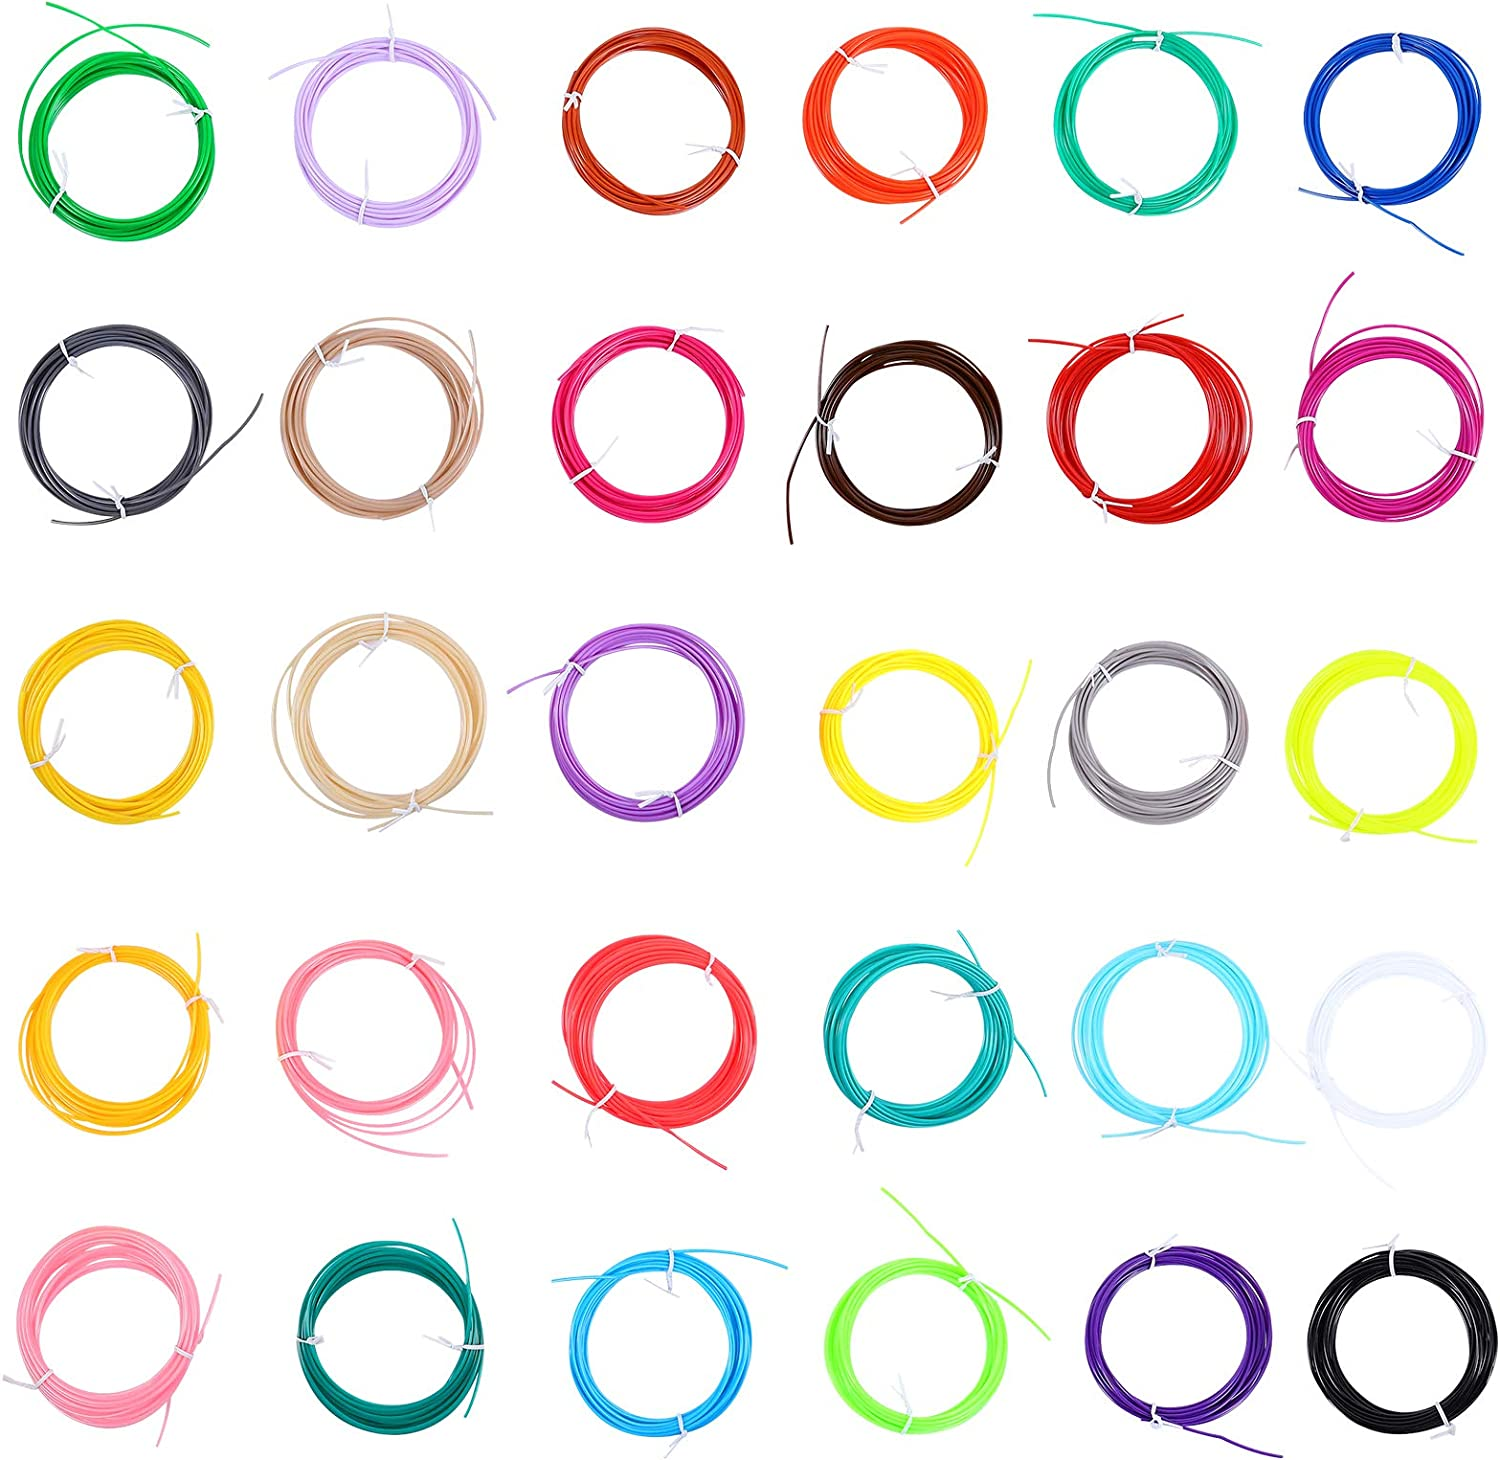 Genuine Free Shipping Filament Refills- 30pcs 30 Outlet sale feature Colors Printing PLA Pe 3D